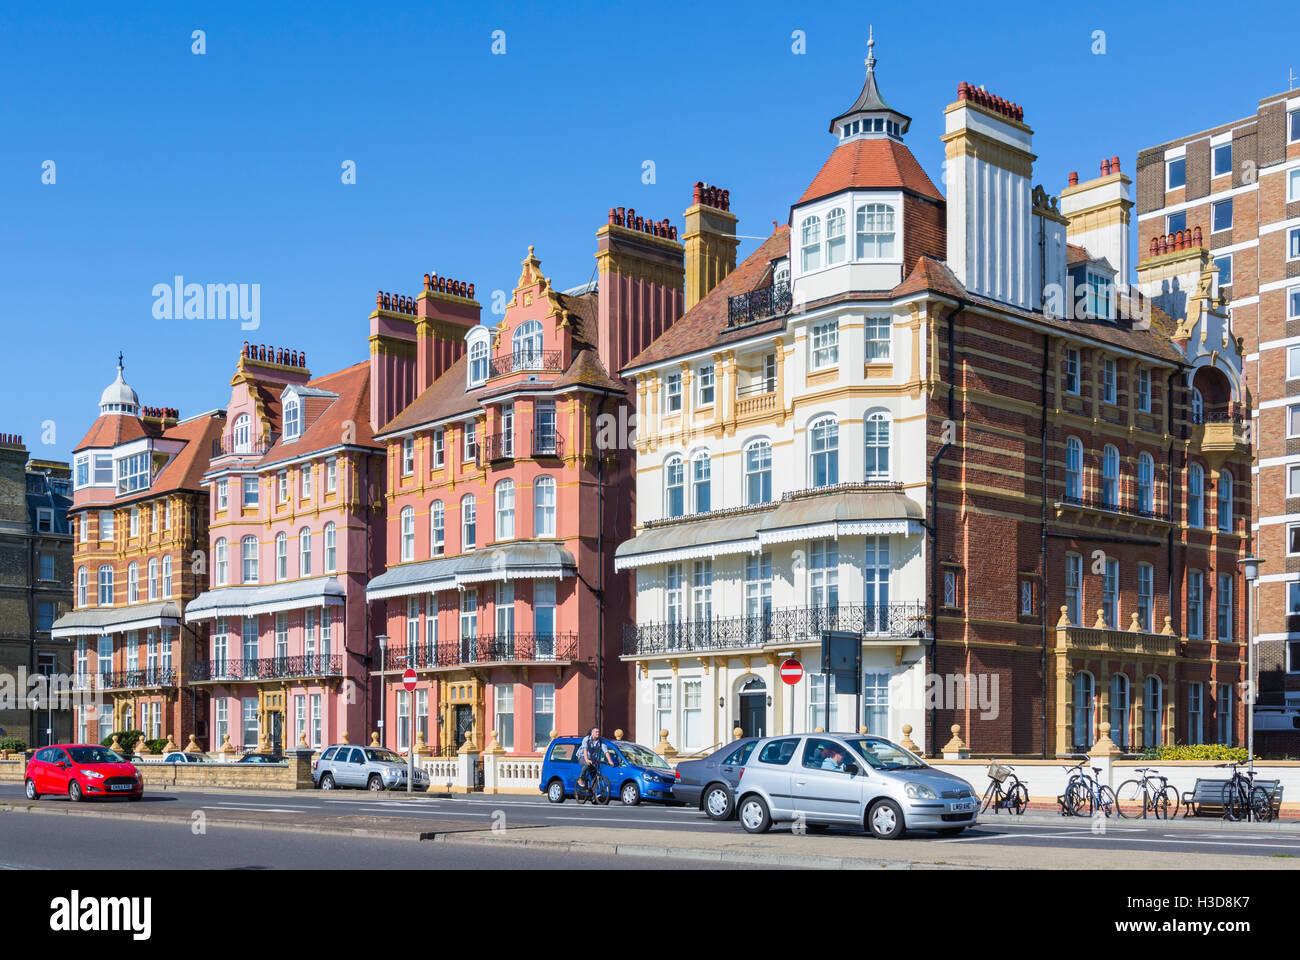 Late 19th century grade II listed houses in Kings Gardens, Hove, Brighton and Hove, East Sussex, England, UK. - Stock Image